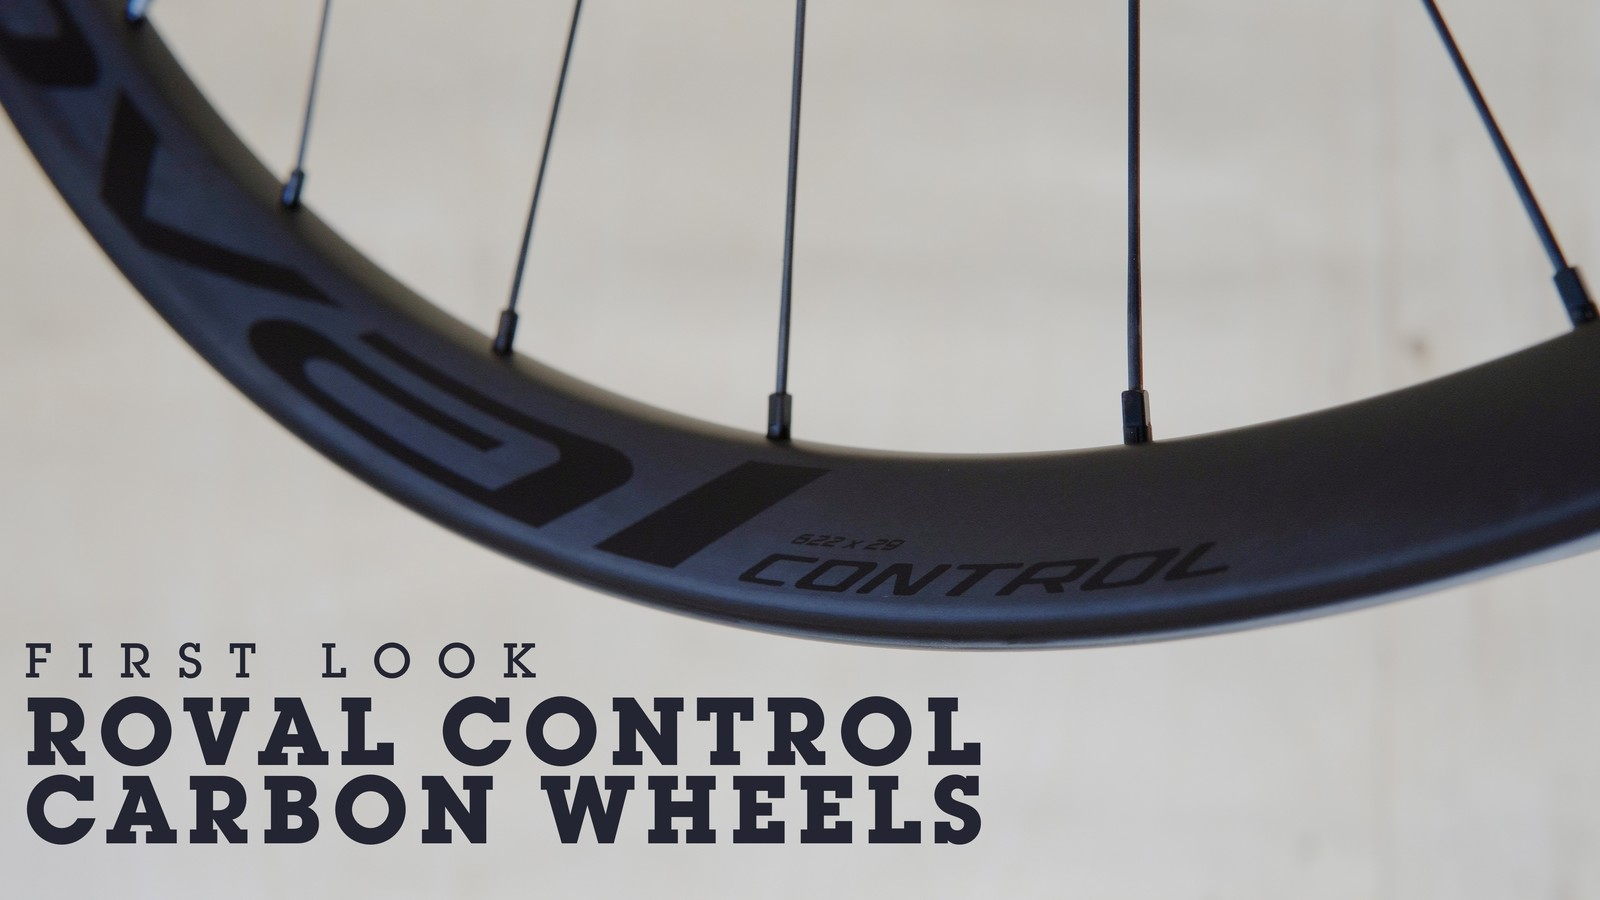 $1,350, 1450g Roval Control Carbon Wheelset First Look